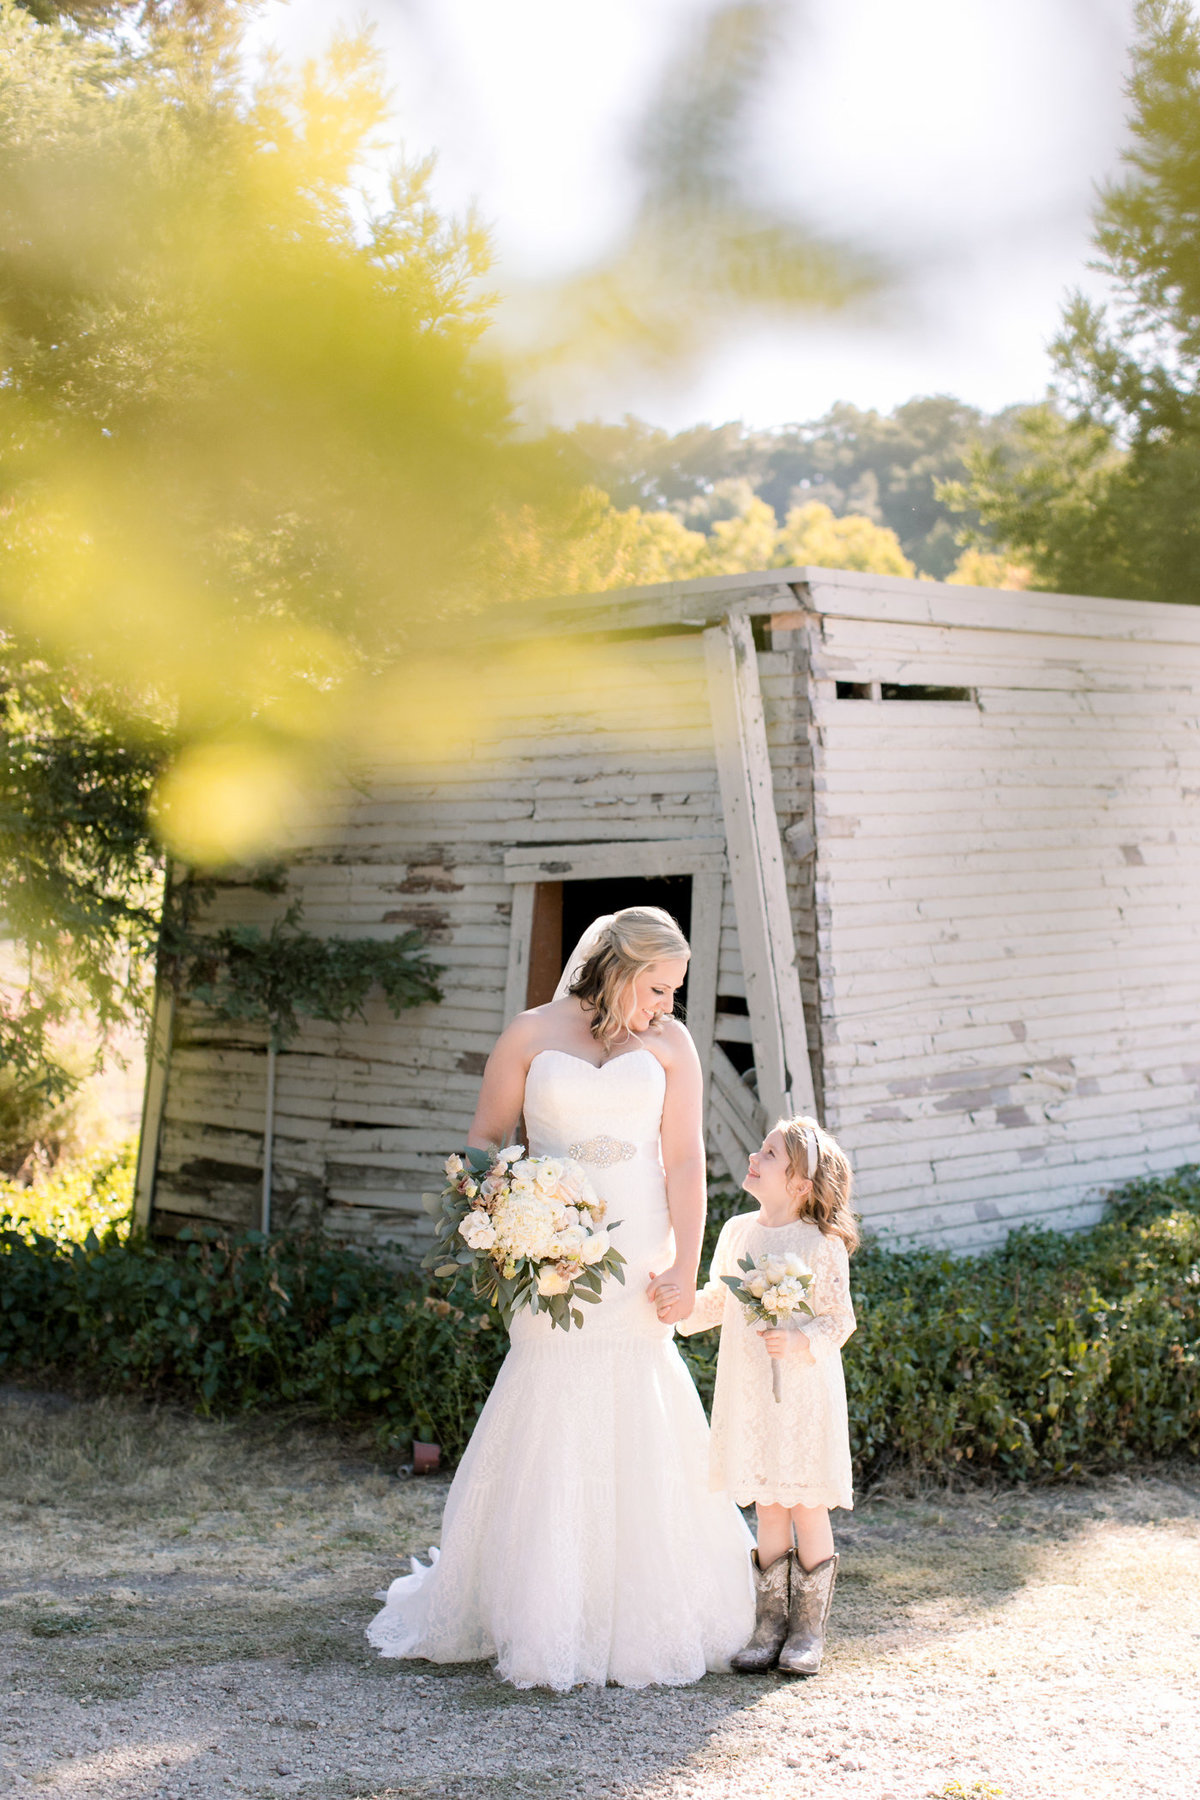 thacher-winery-wedding-flower-girl-tayler-enerle-photographer